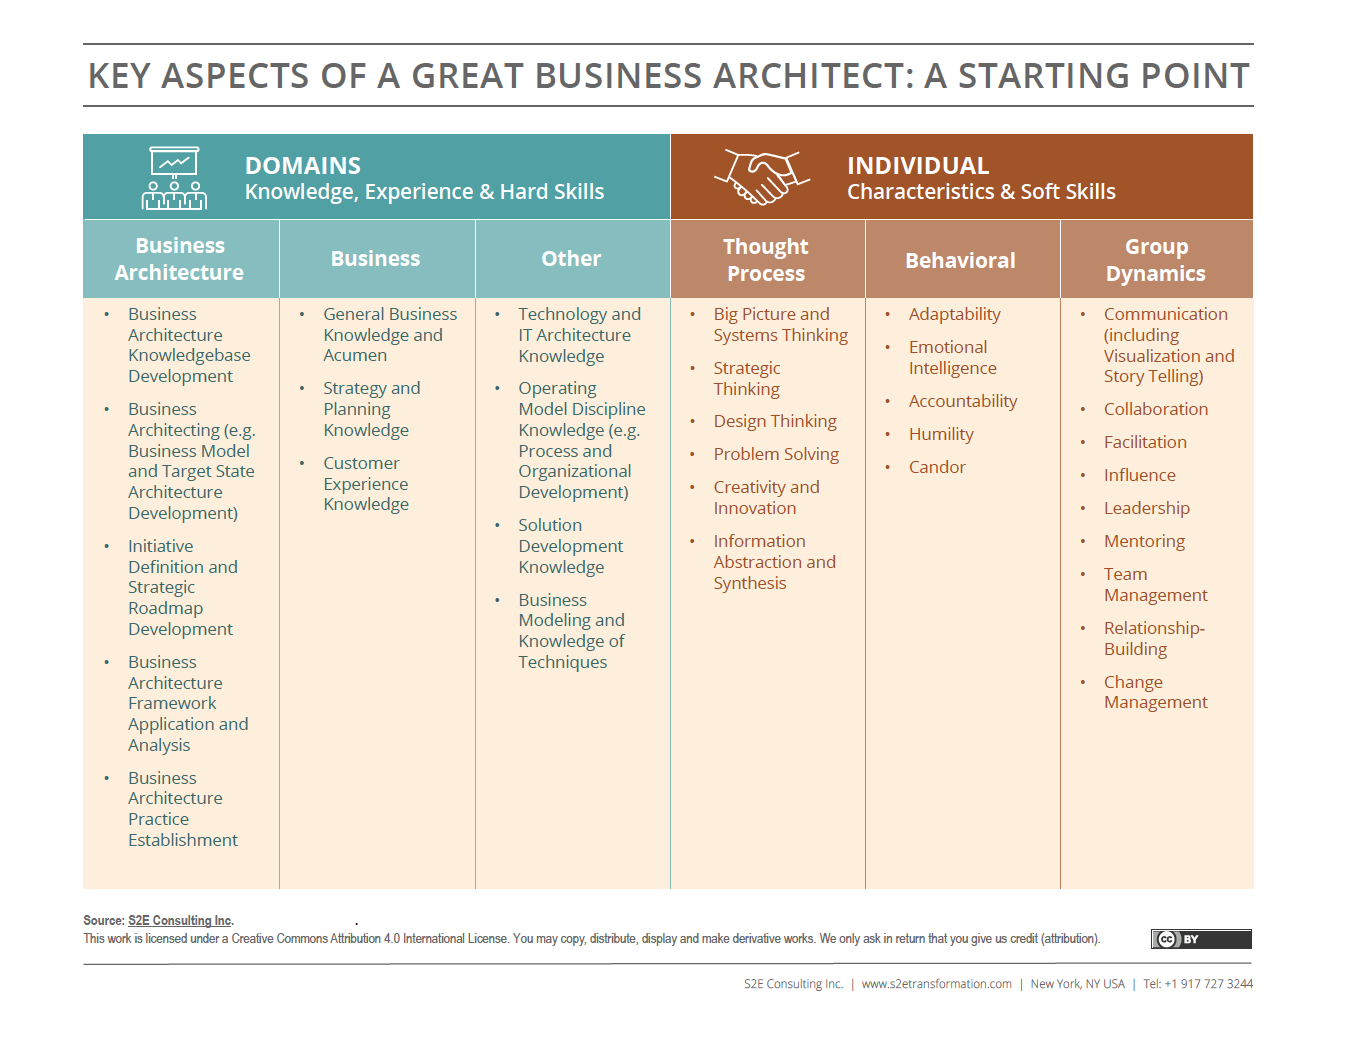 S2E Key Aspects of a Great Business Architect